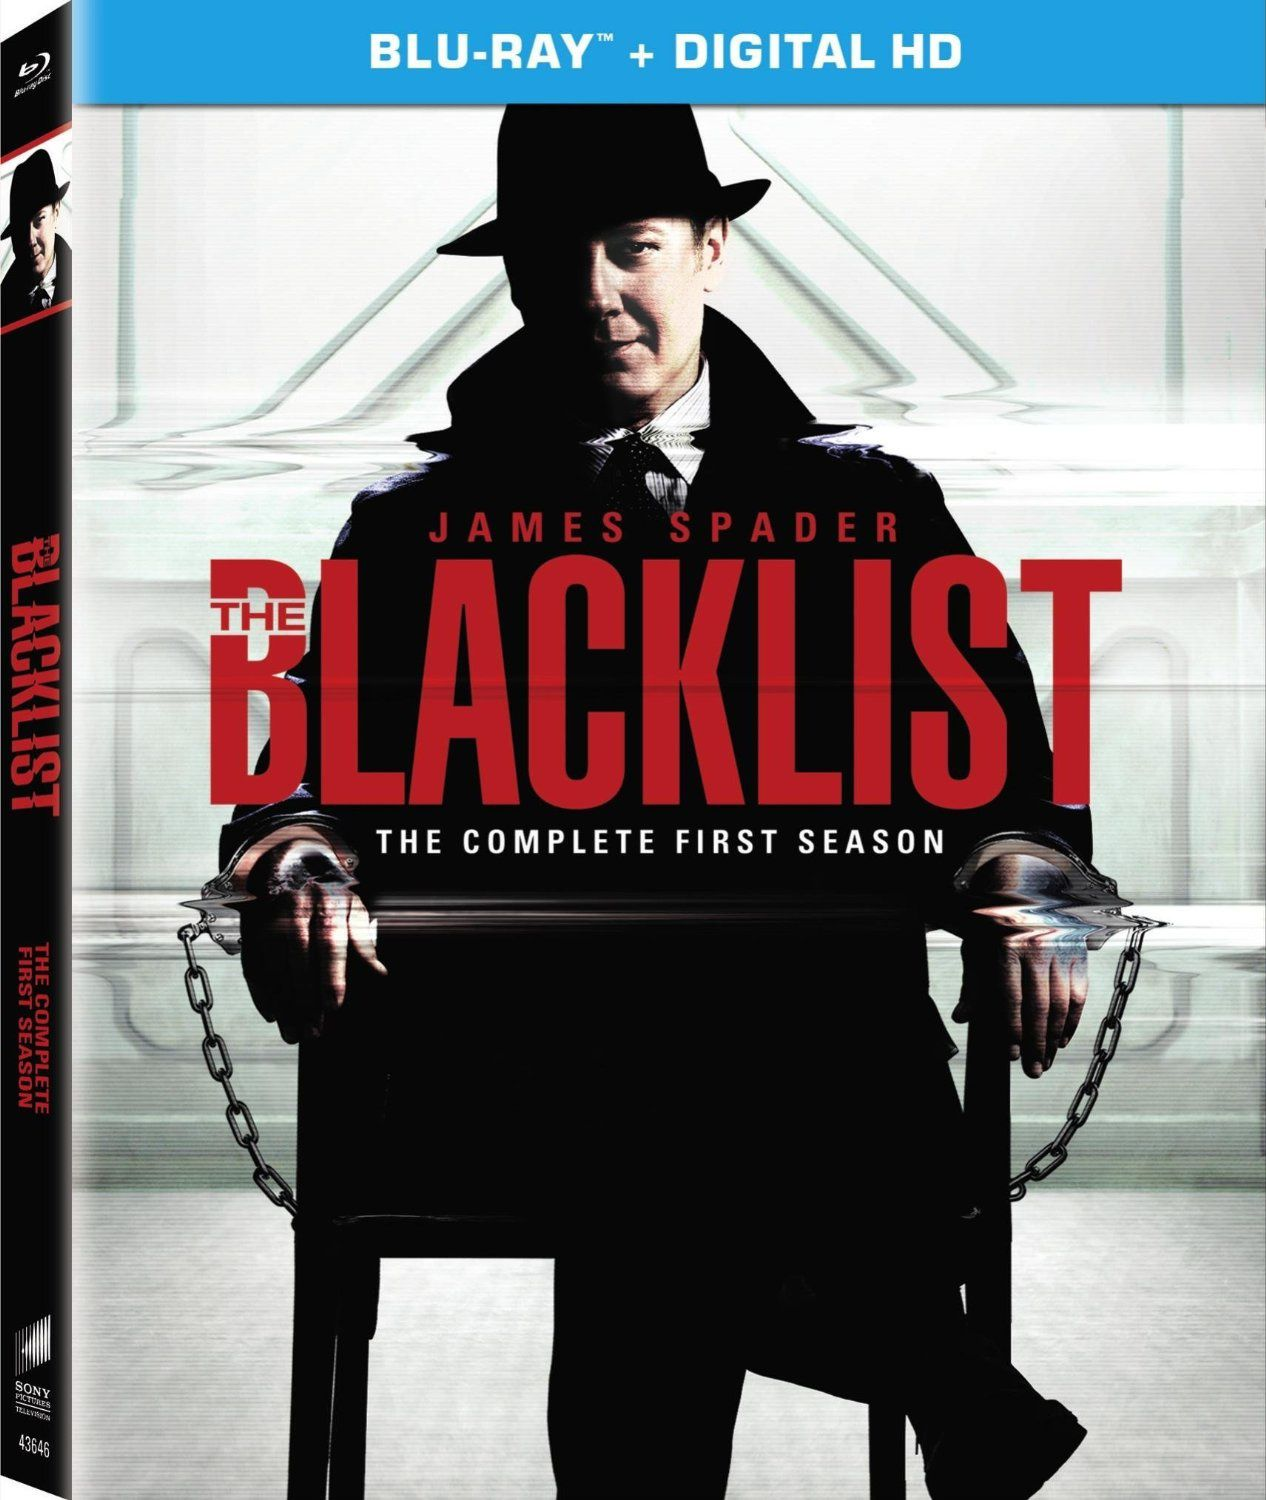 The blacklist saison 1 en dvd/blu-ray/digital ultraviolet